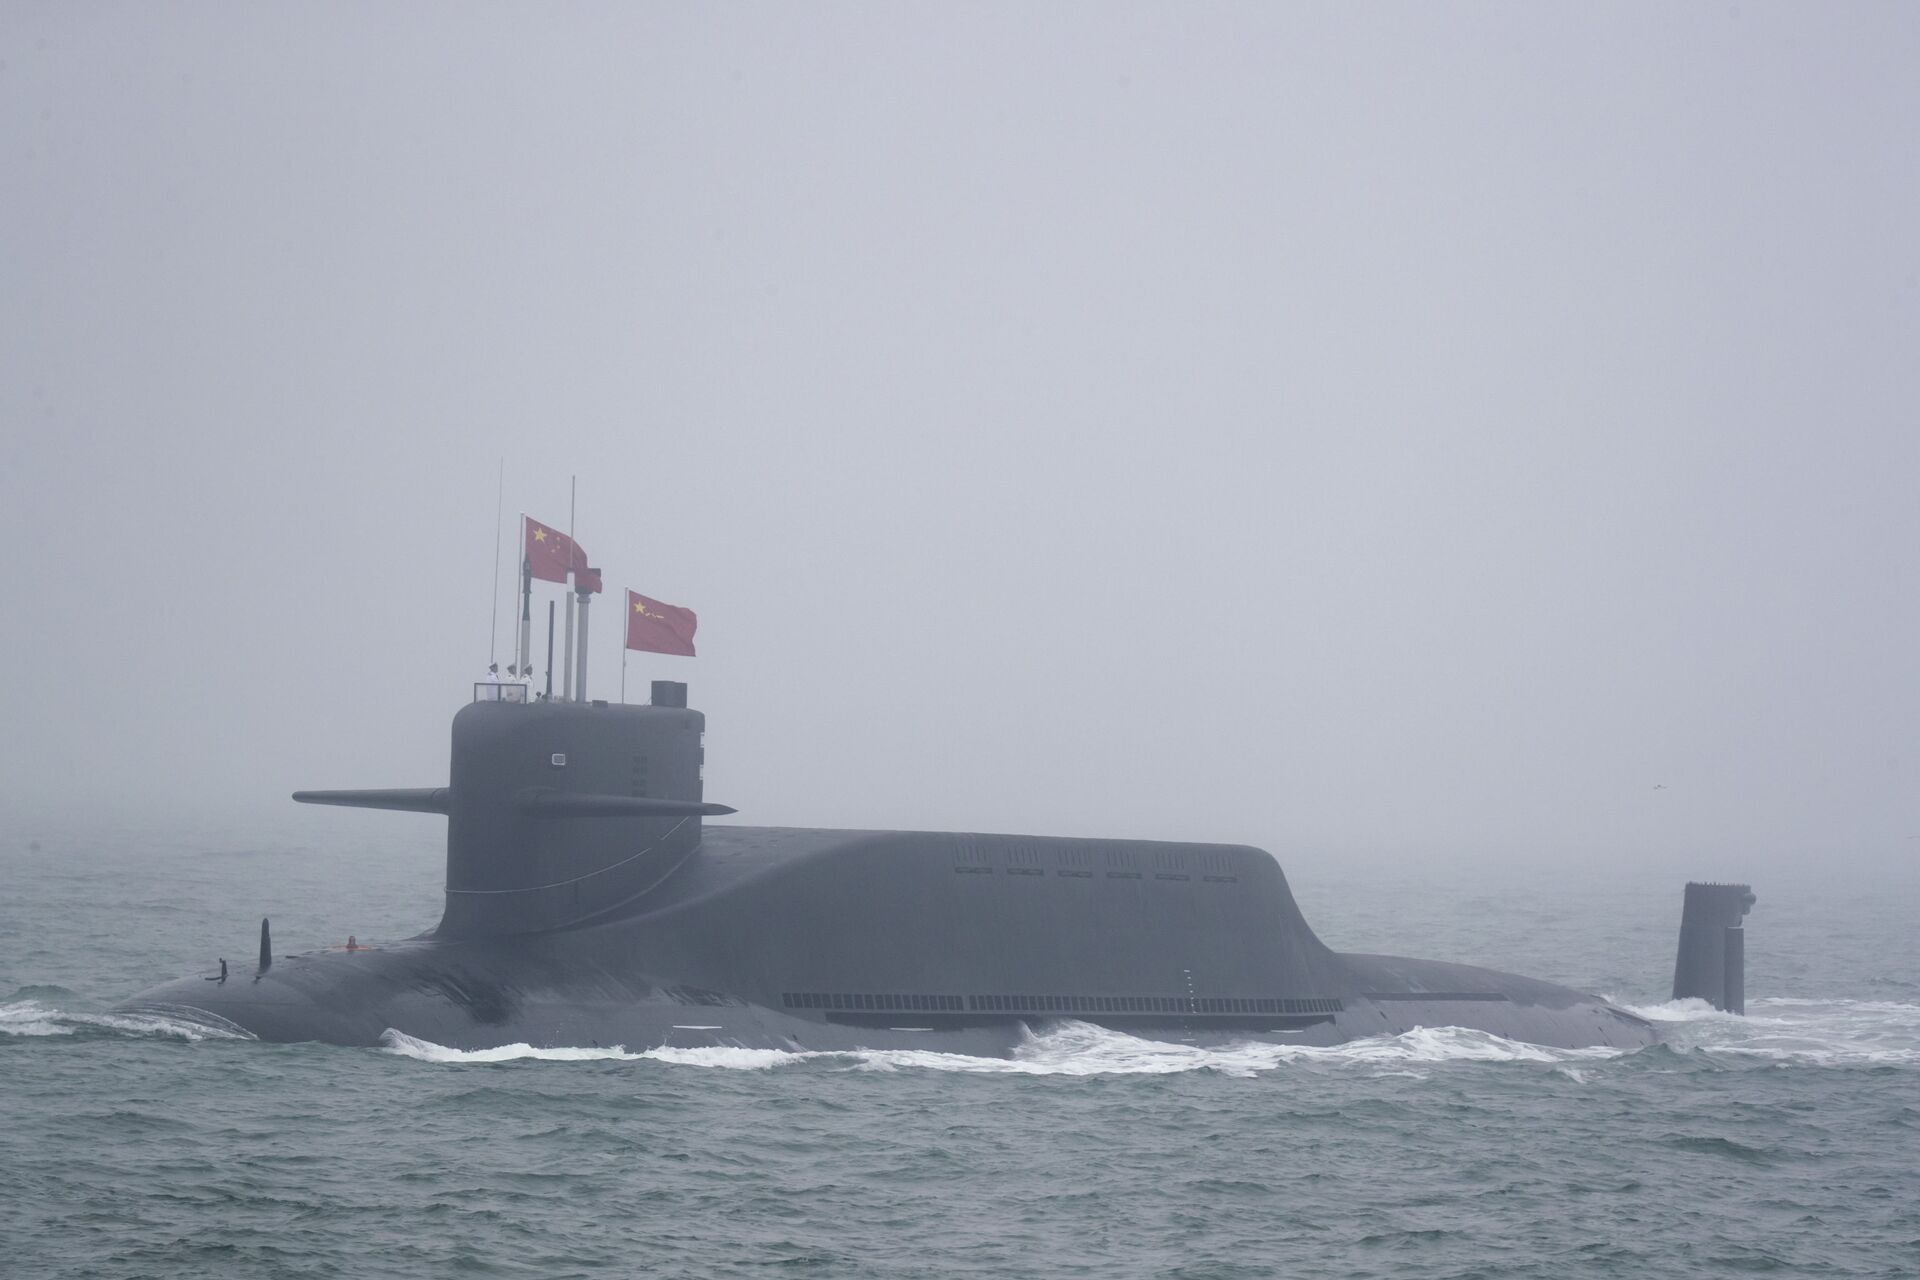 A new type 094A Jin-class nuclear submarine Long March 10 of the Chinese People's Liberation Army (PLA) Navy participates in a naval parade to commemorate the 70th anniversary of the founding of China's PLA Navy in the sea near Qingdao in eastern China's Shandong province, Tuesday, April 23, 2019 - Sputnik International, 1920, 08.10.2021